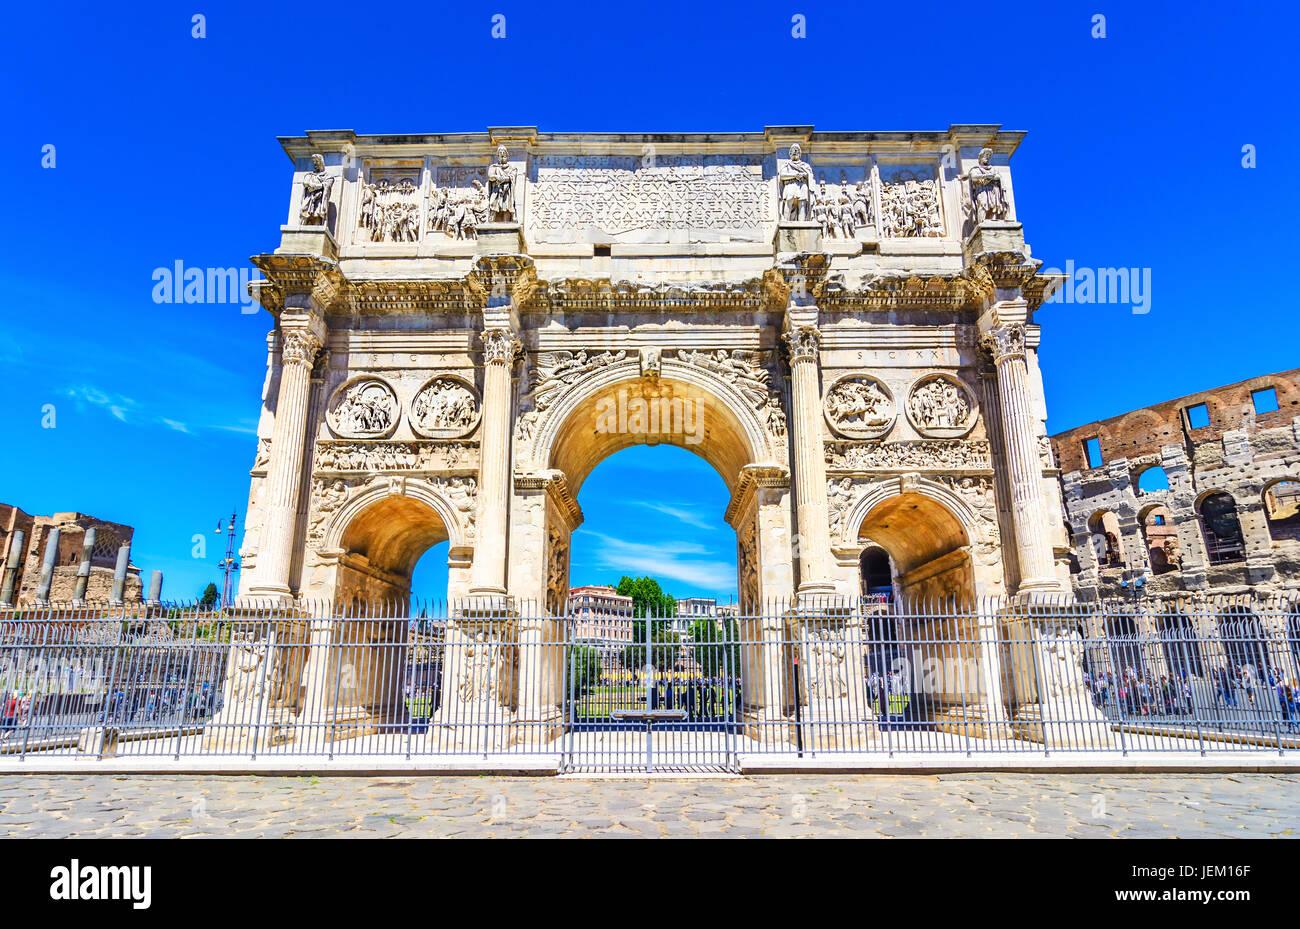 The Arch of Constantine and  the Colosseum in Rome, Italy - Stock Image